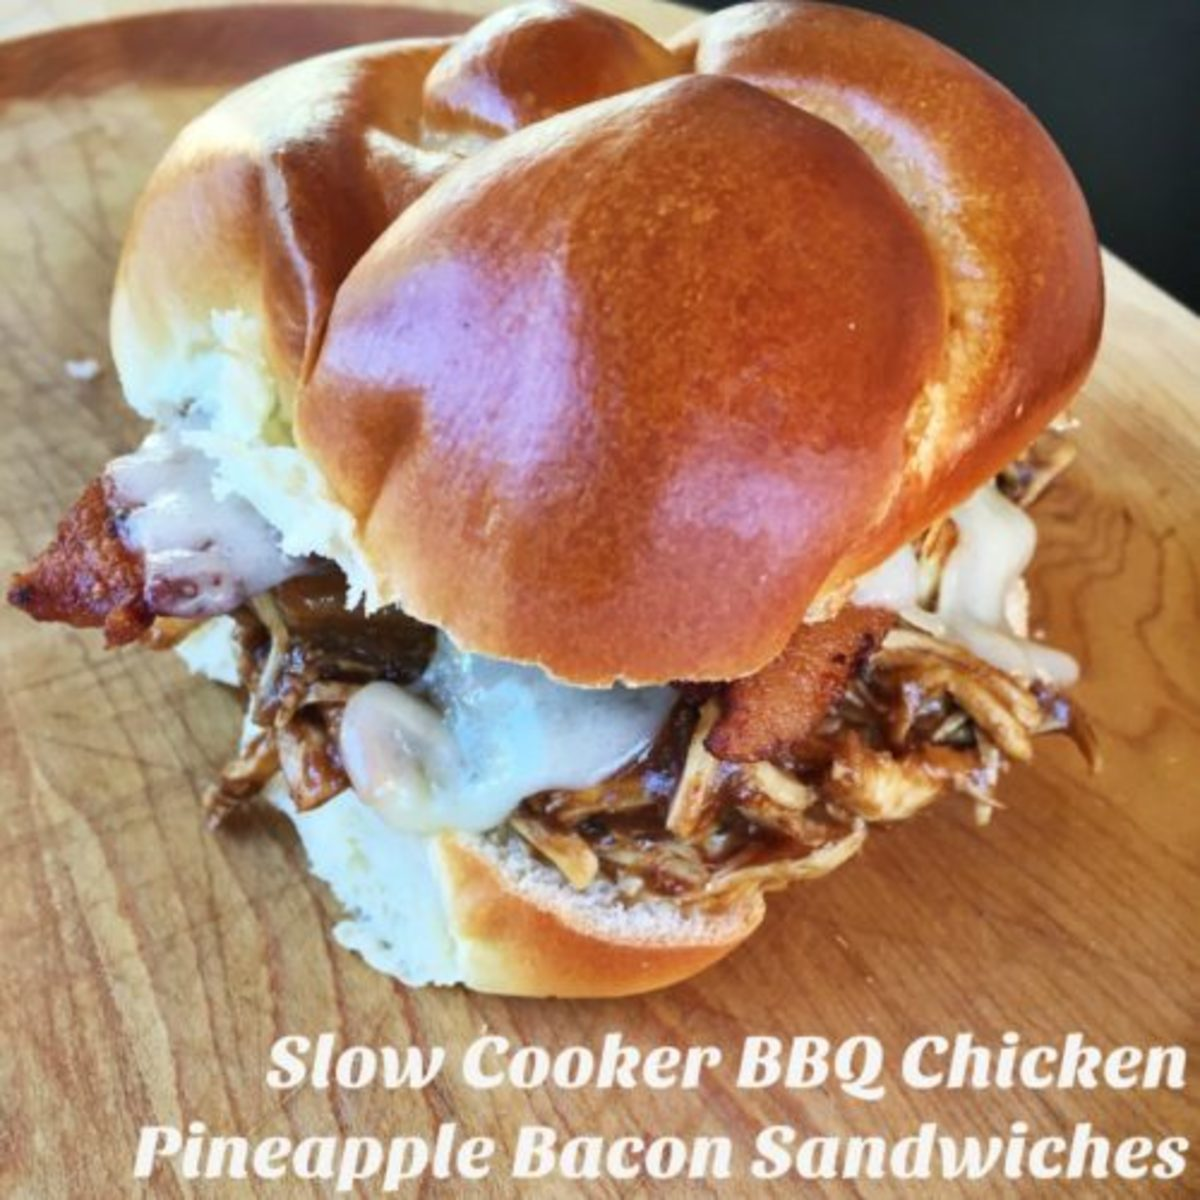 Slow Cooker BBQ Chicken Pineapple Bacon Sandwiches